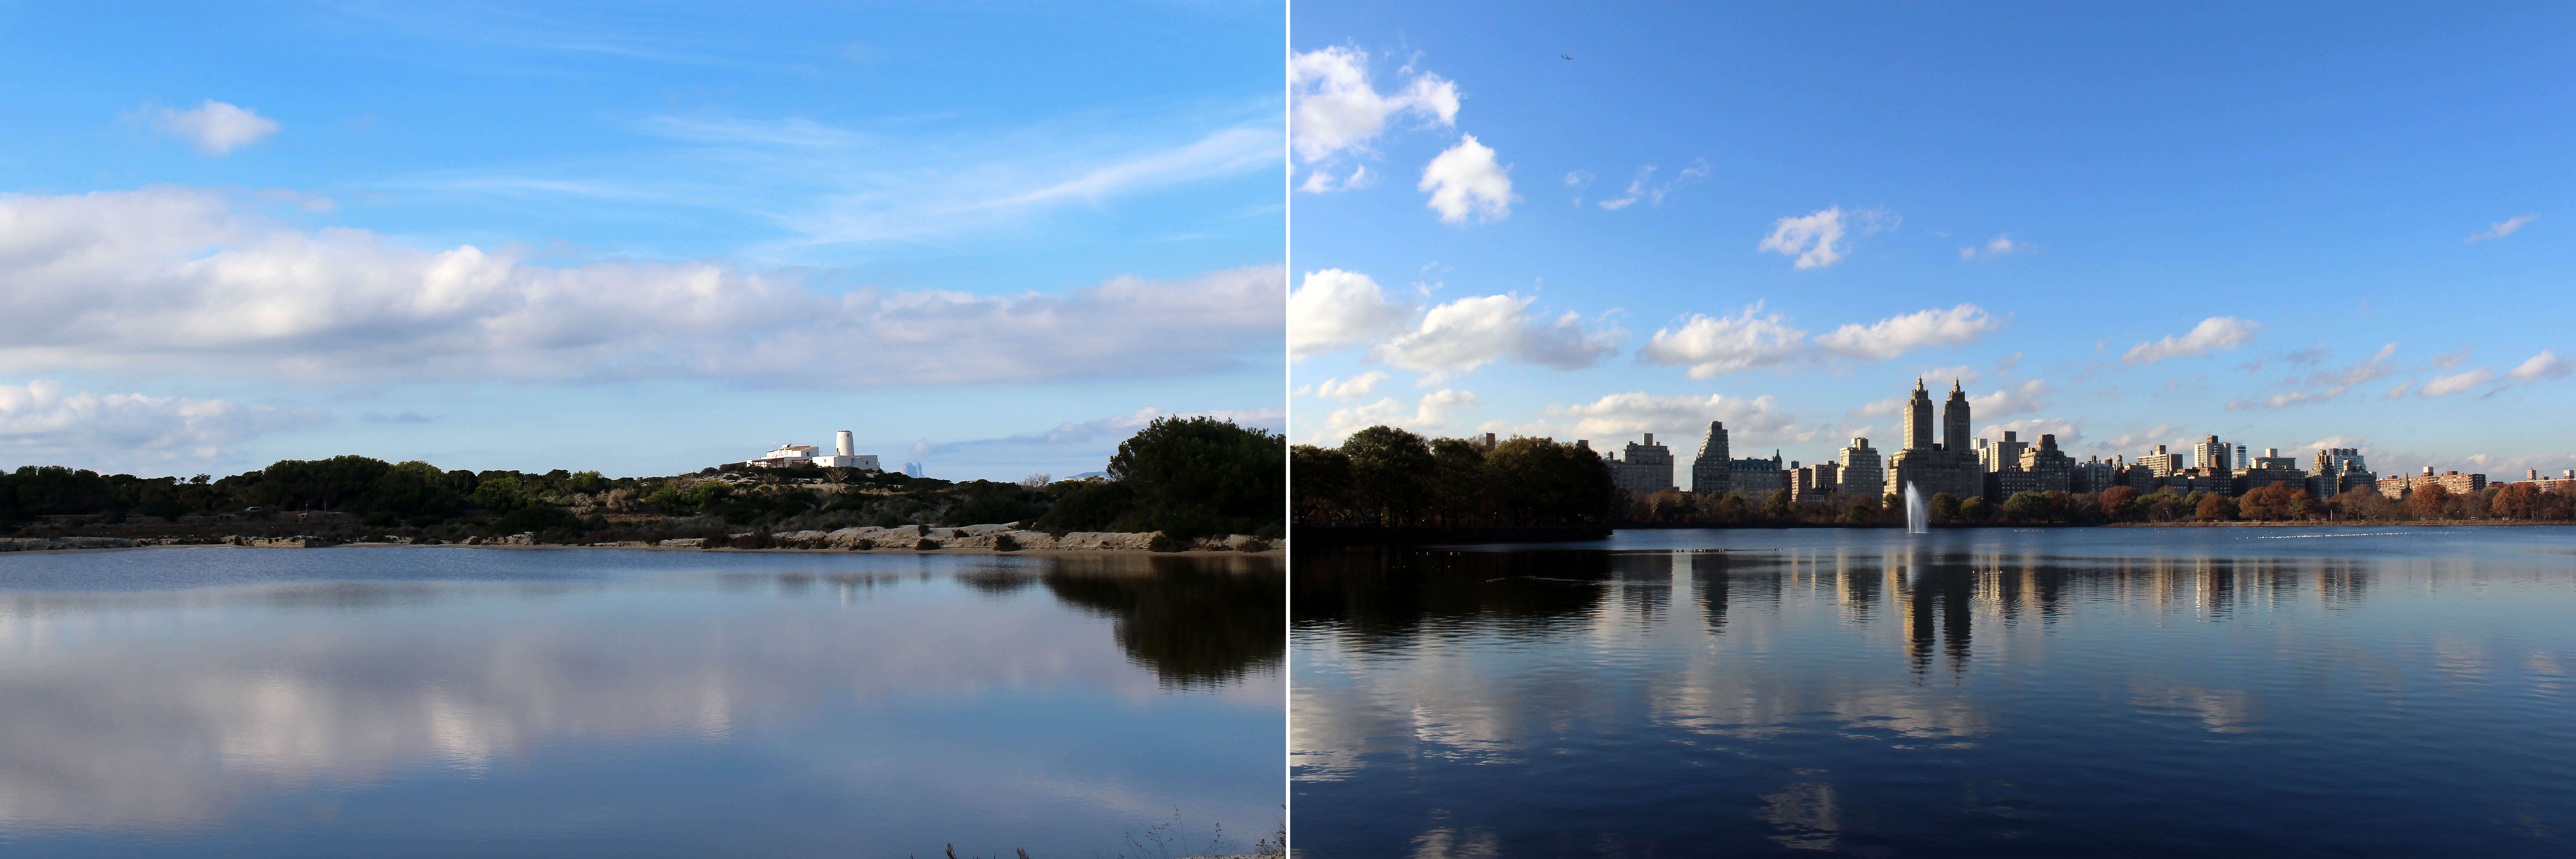 Islands of Calm artwork comparing Formentera and Manhattan, showing a lake with the reflection of the blue sky and clouds in Formentera on the left side and on the right the Central Park reservoir, also with sky and clouds reflected in the water. Part of the Formenhattan exhibition by artist Denise Leichter.